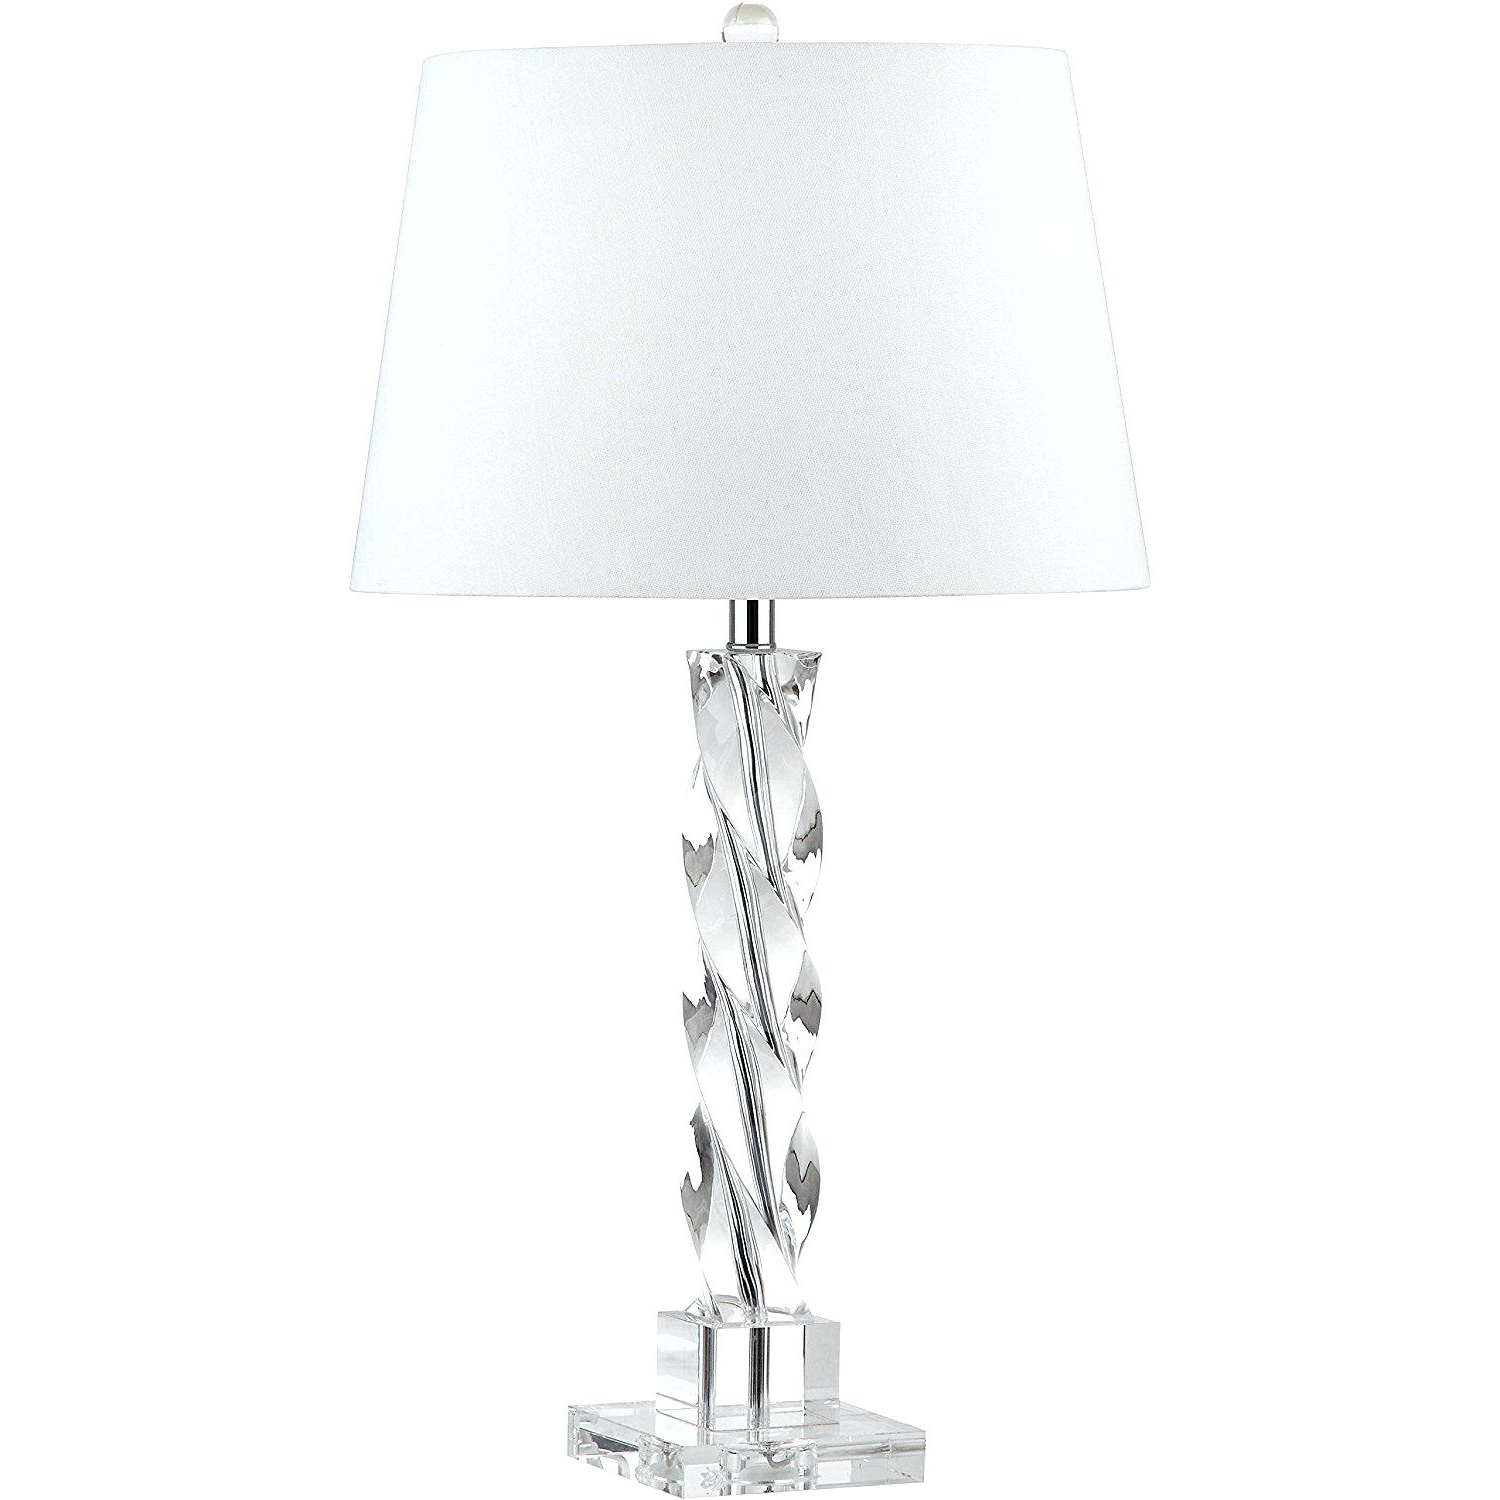 Most Recently Released Overstock Table Lamps Most Magic White Lamp Lamp Shades For Table Within Overstock Living Room Table Lamps (View 8 of 20)